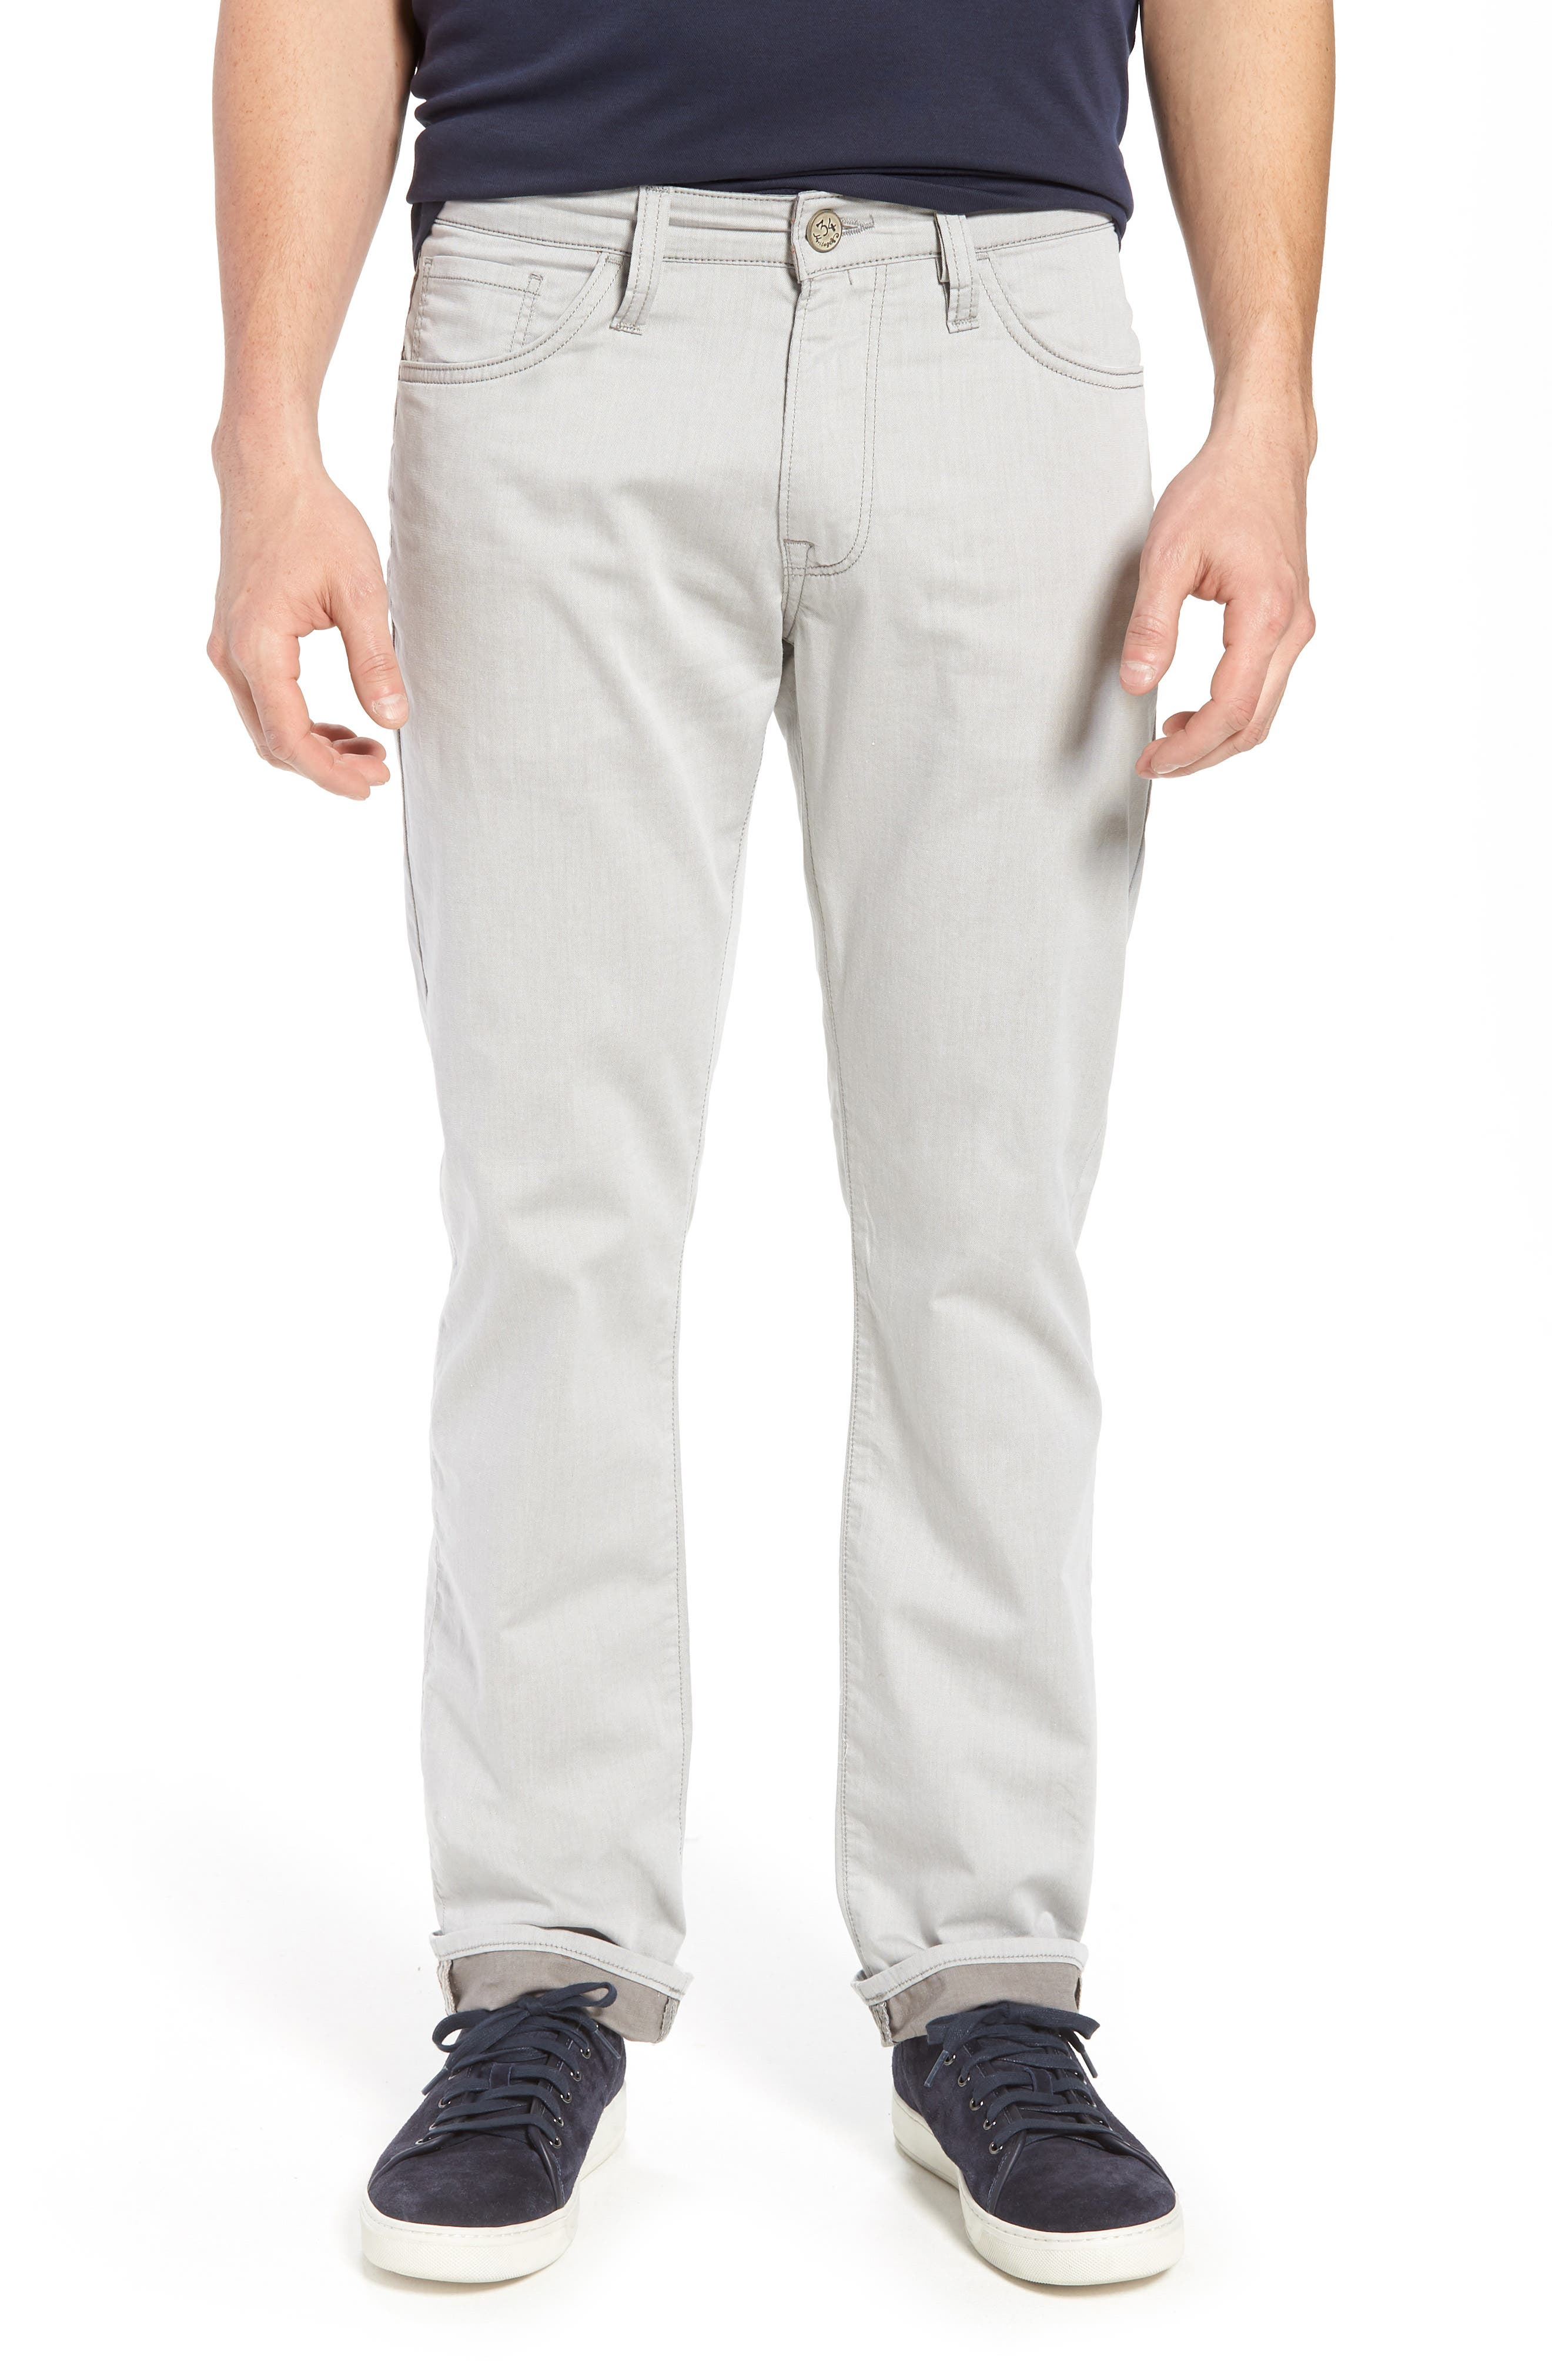 Courage Straight Leg Jeans,                         Main,                         color, LATTE HERRINGBONE REVERSED